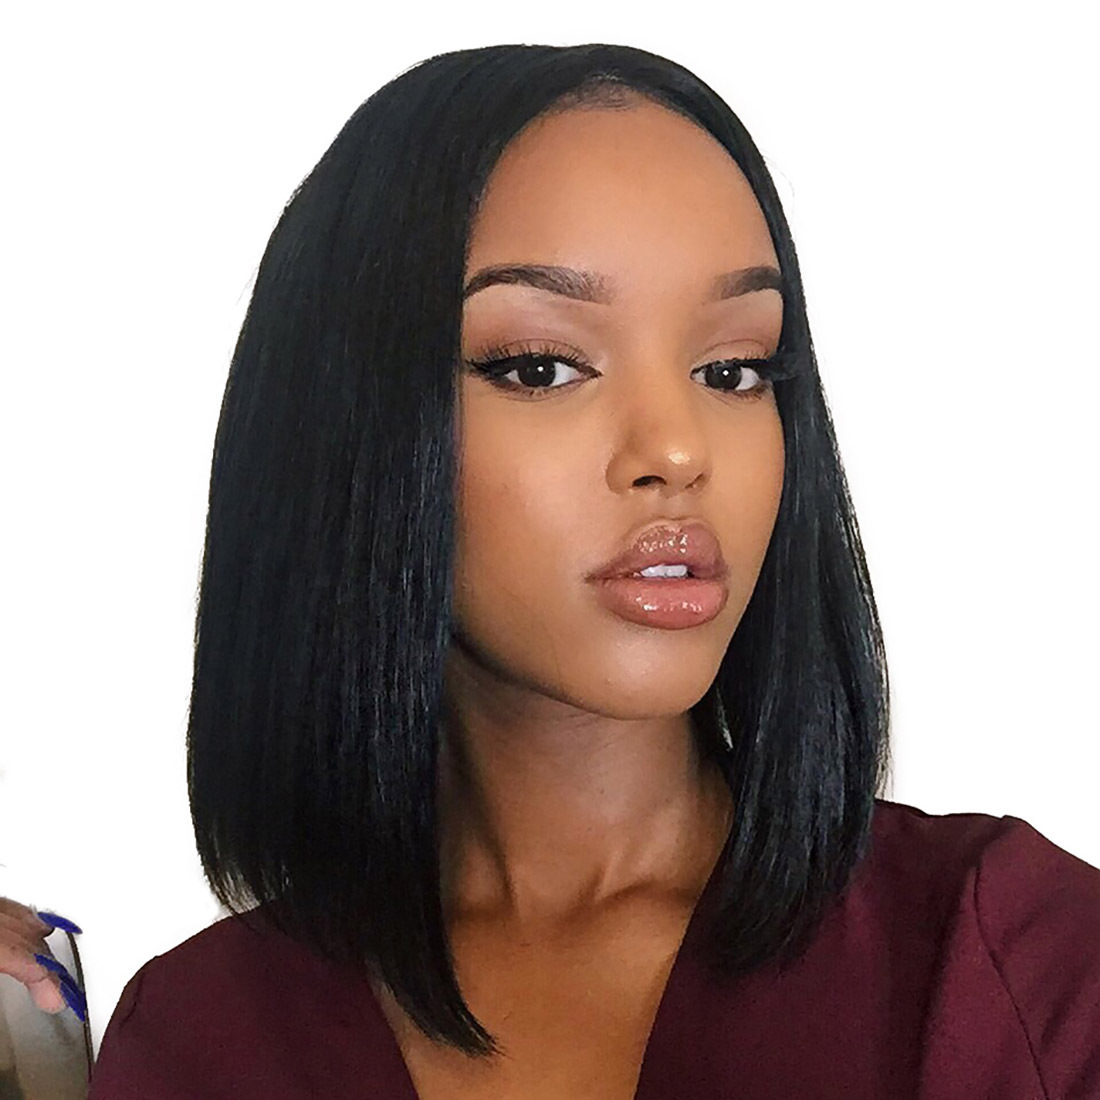 Human Hair Lace Front Wigs For Women Middle Part Short Bob